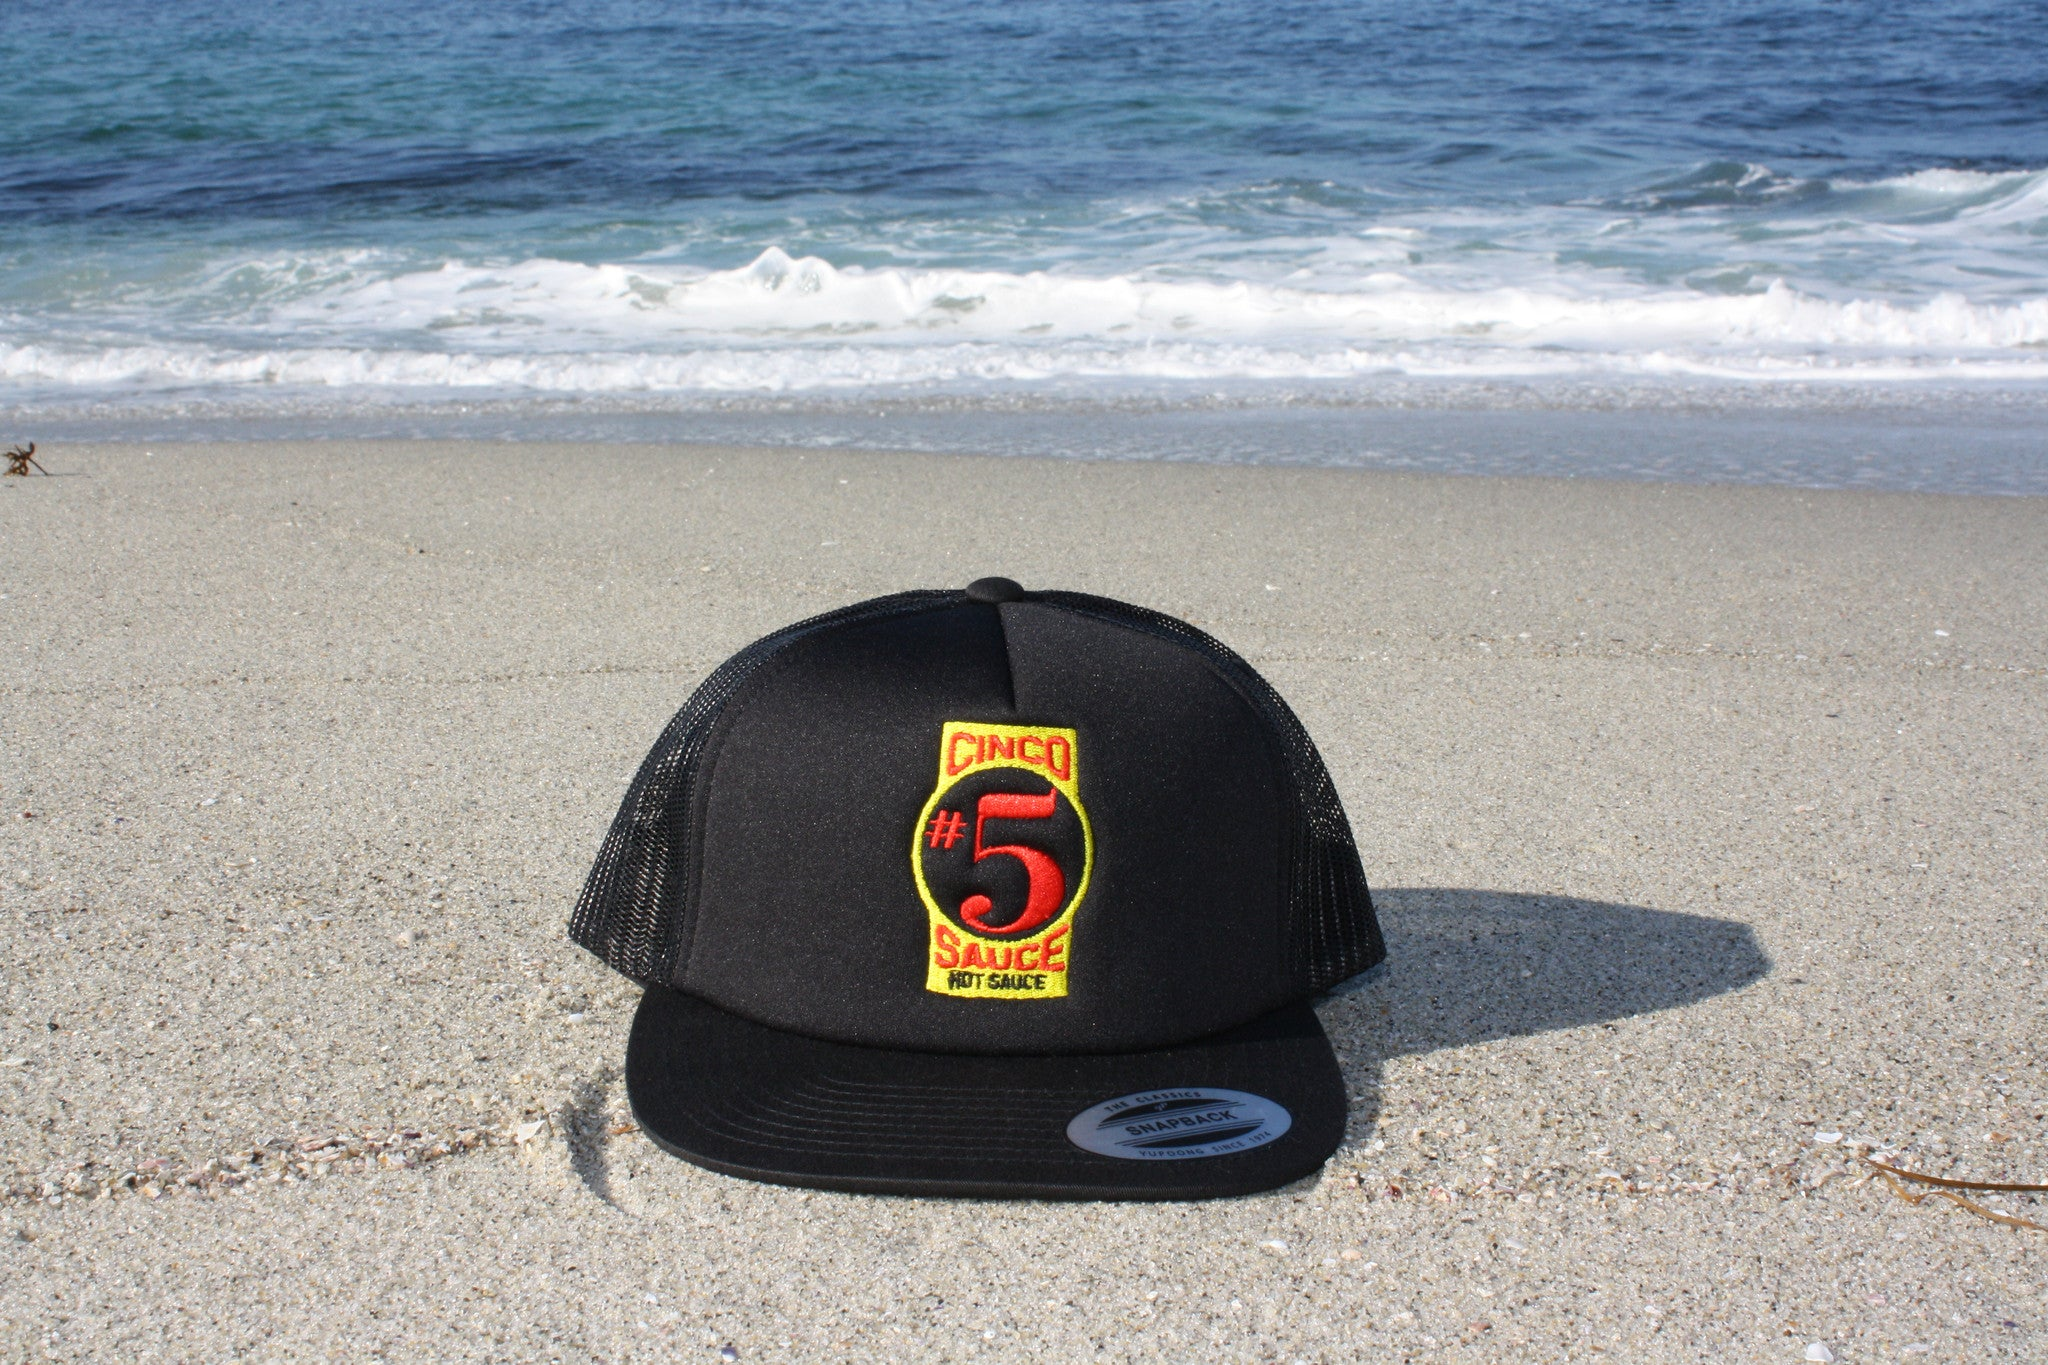 CINCO SAUCE™ LOW-RISE FOAM TRUCKER SNAPBACK BALL CAP – Cinco Sauce® 22c5a667c3f